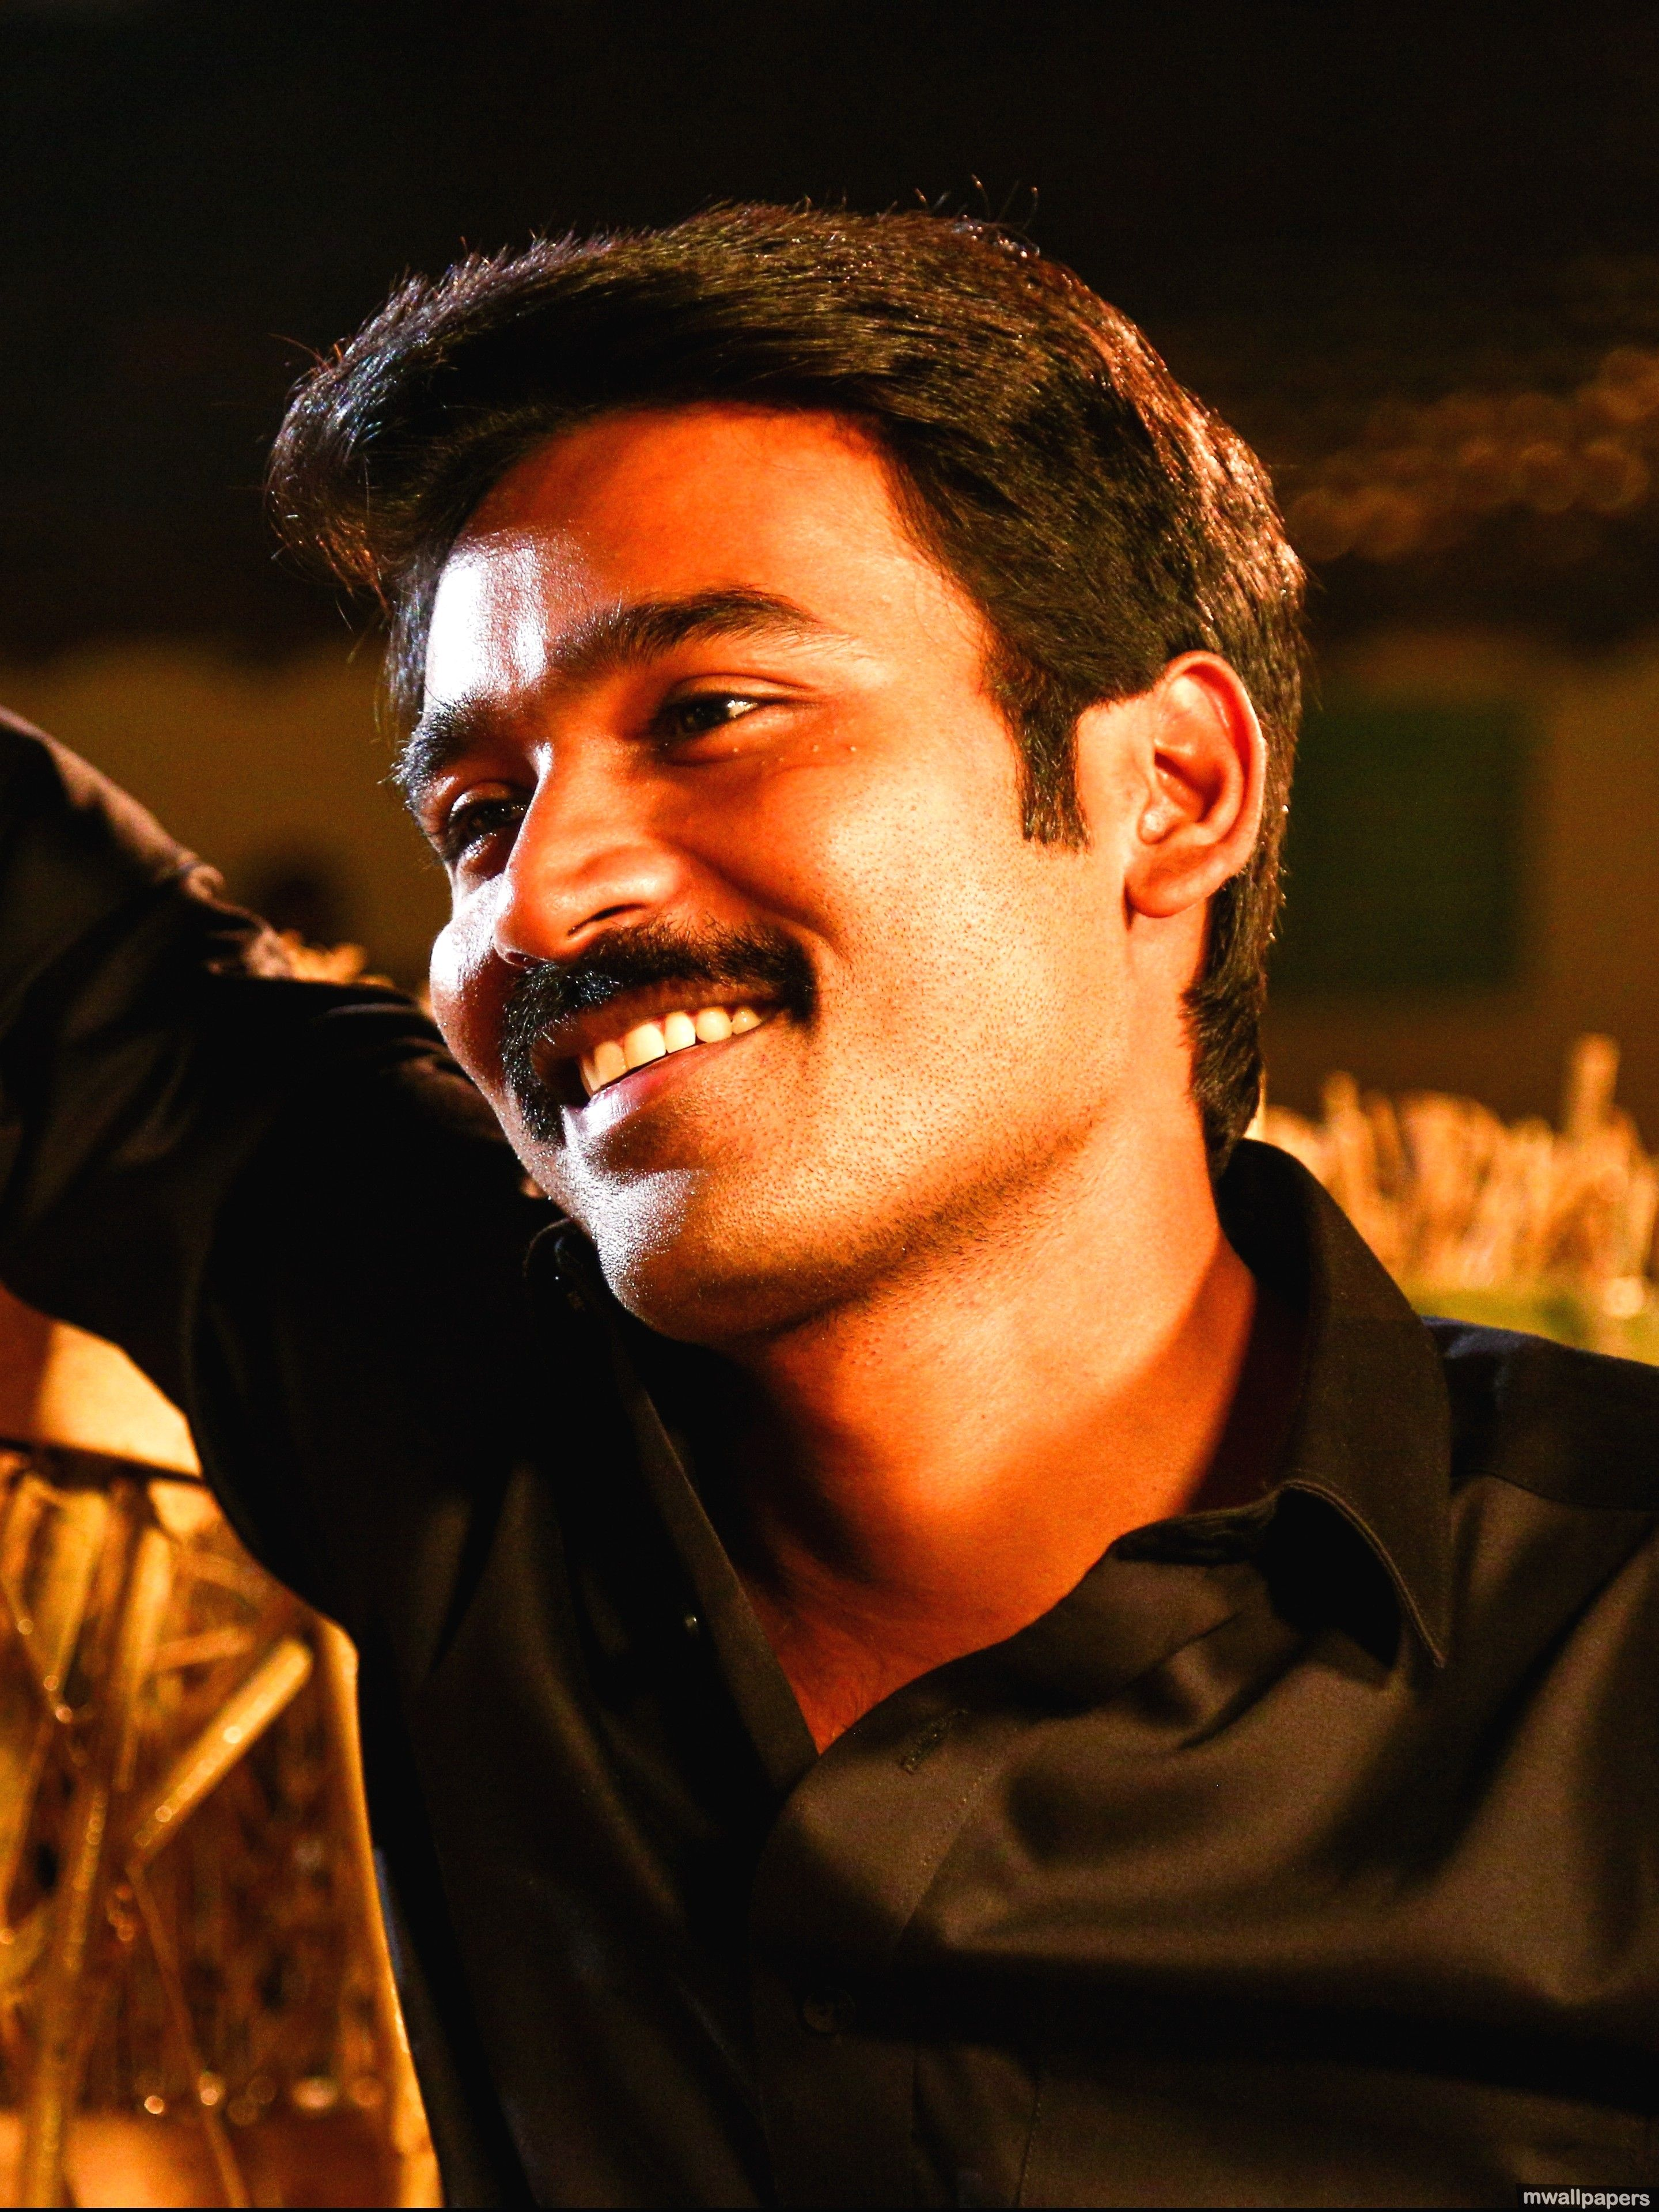 Dhanush HD Wallpapers/Images (1080p) - #7920 #danush #dhanush #kollywood #hollywood #mollywood # ...